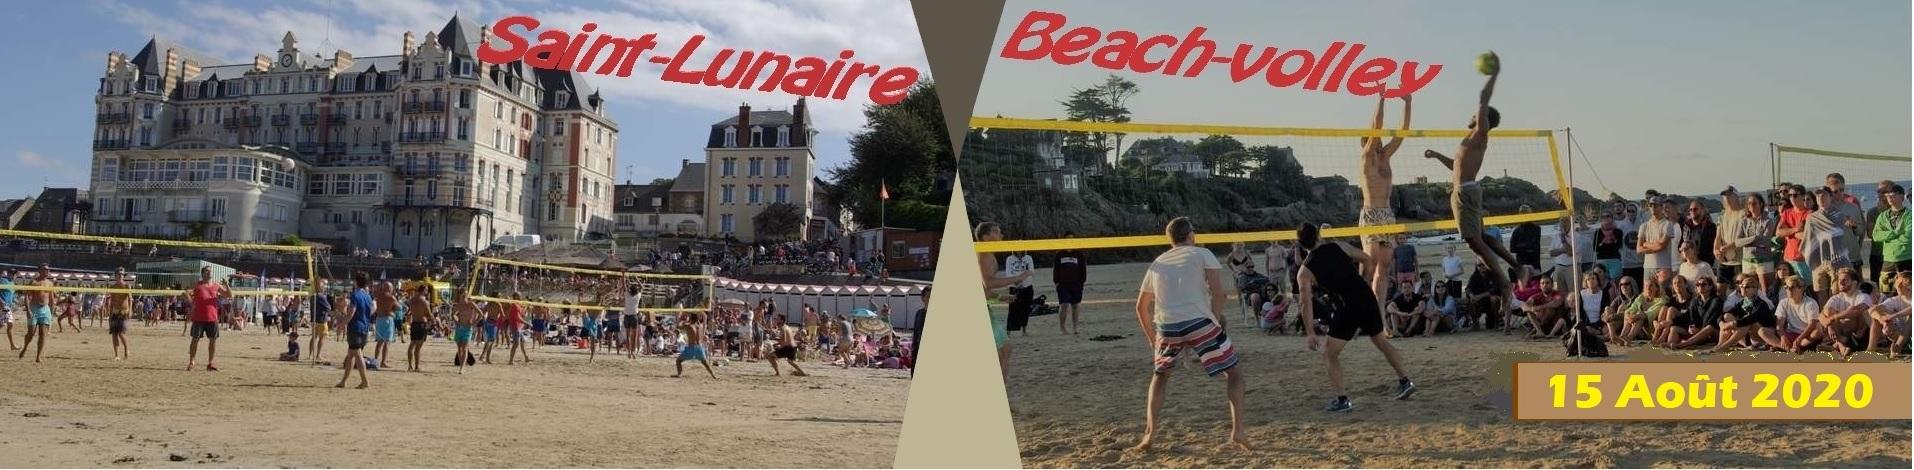 Tournoi de beach-volley de Saint-Lunaire